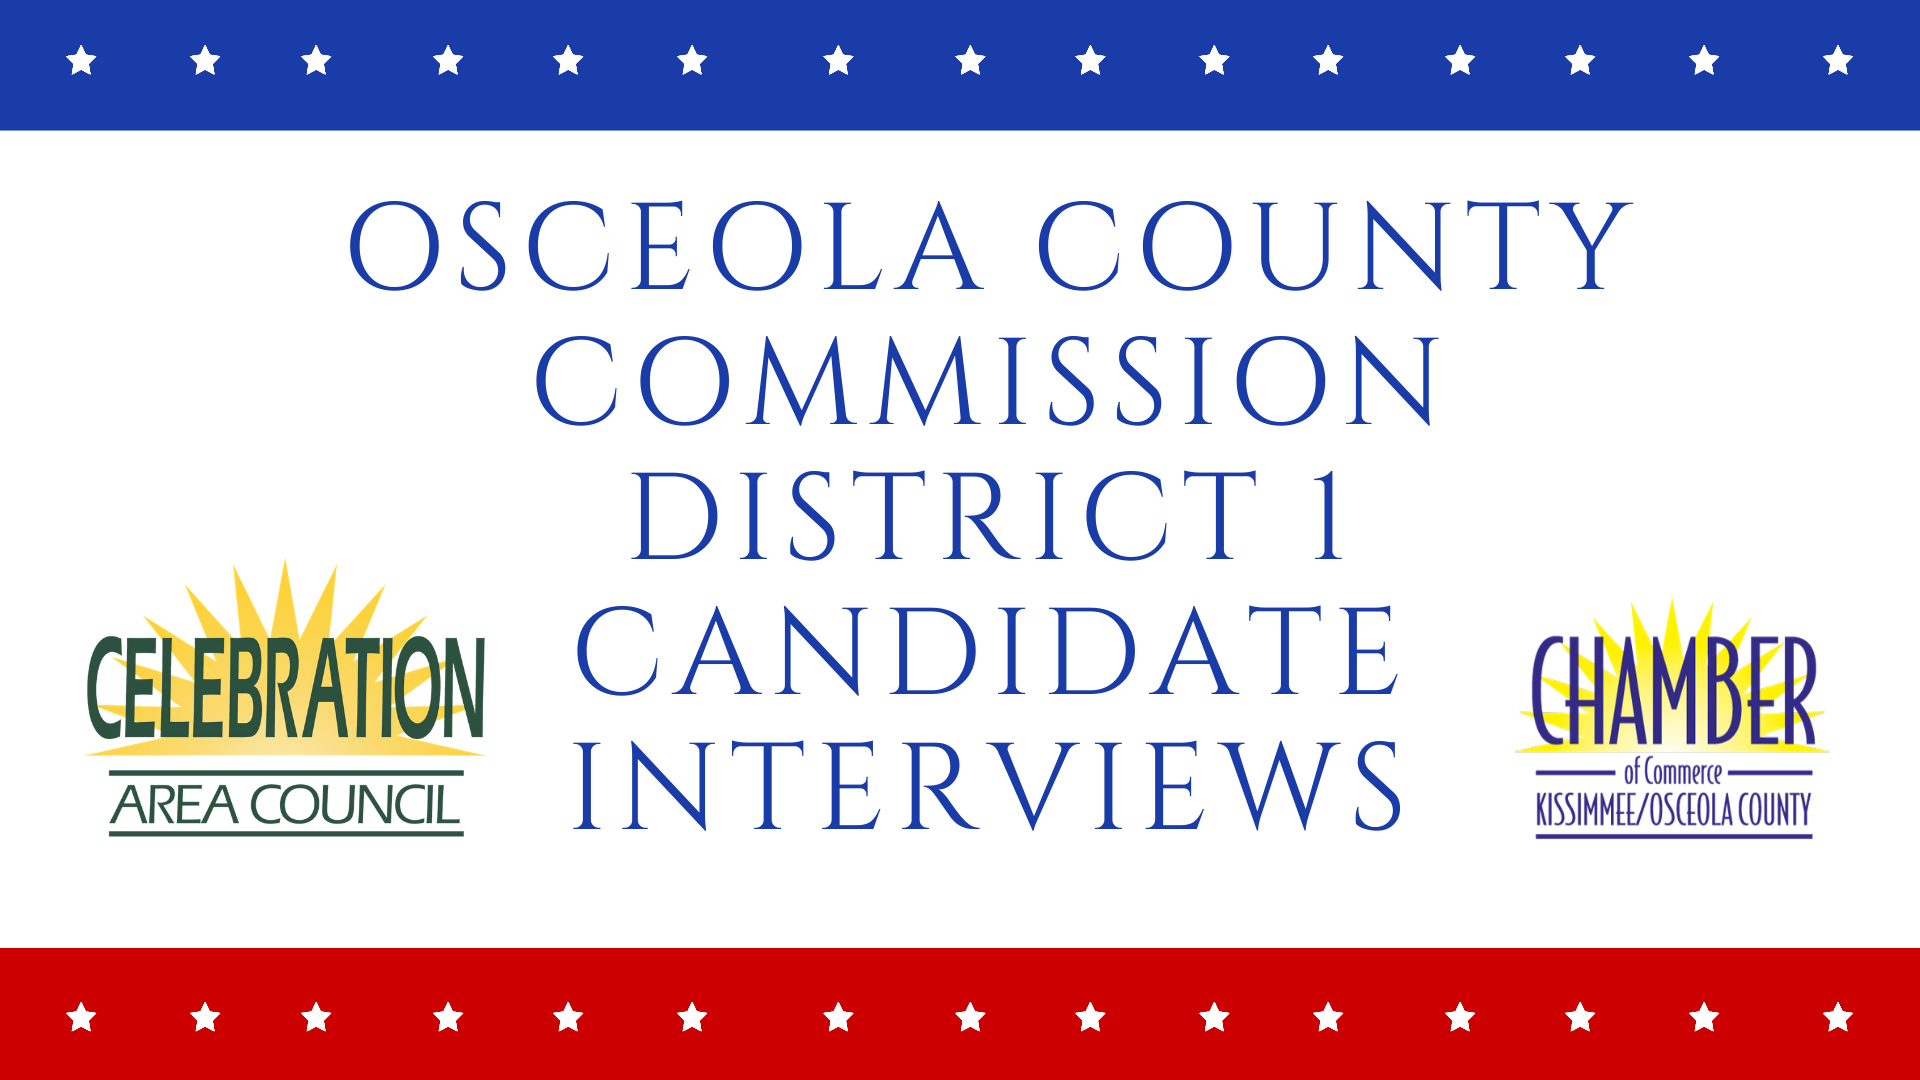 Celebration Area Council Holds Town Hall Conversations With Osceola County Commission Candidates